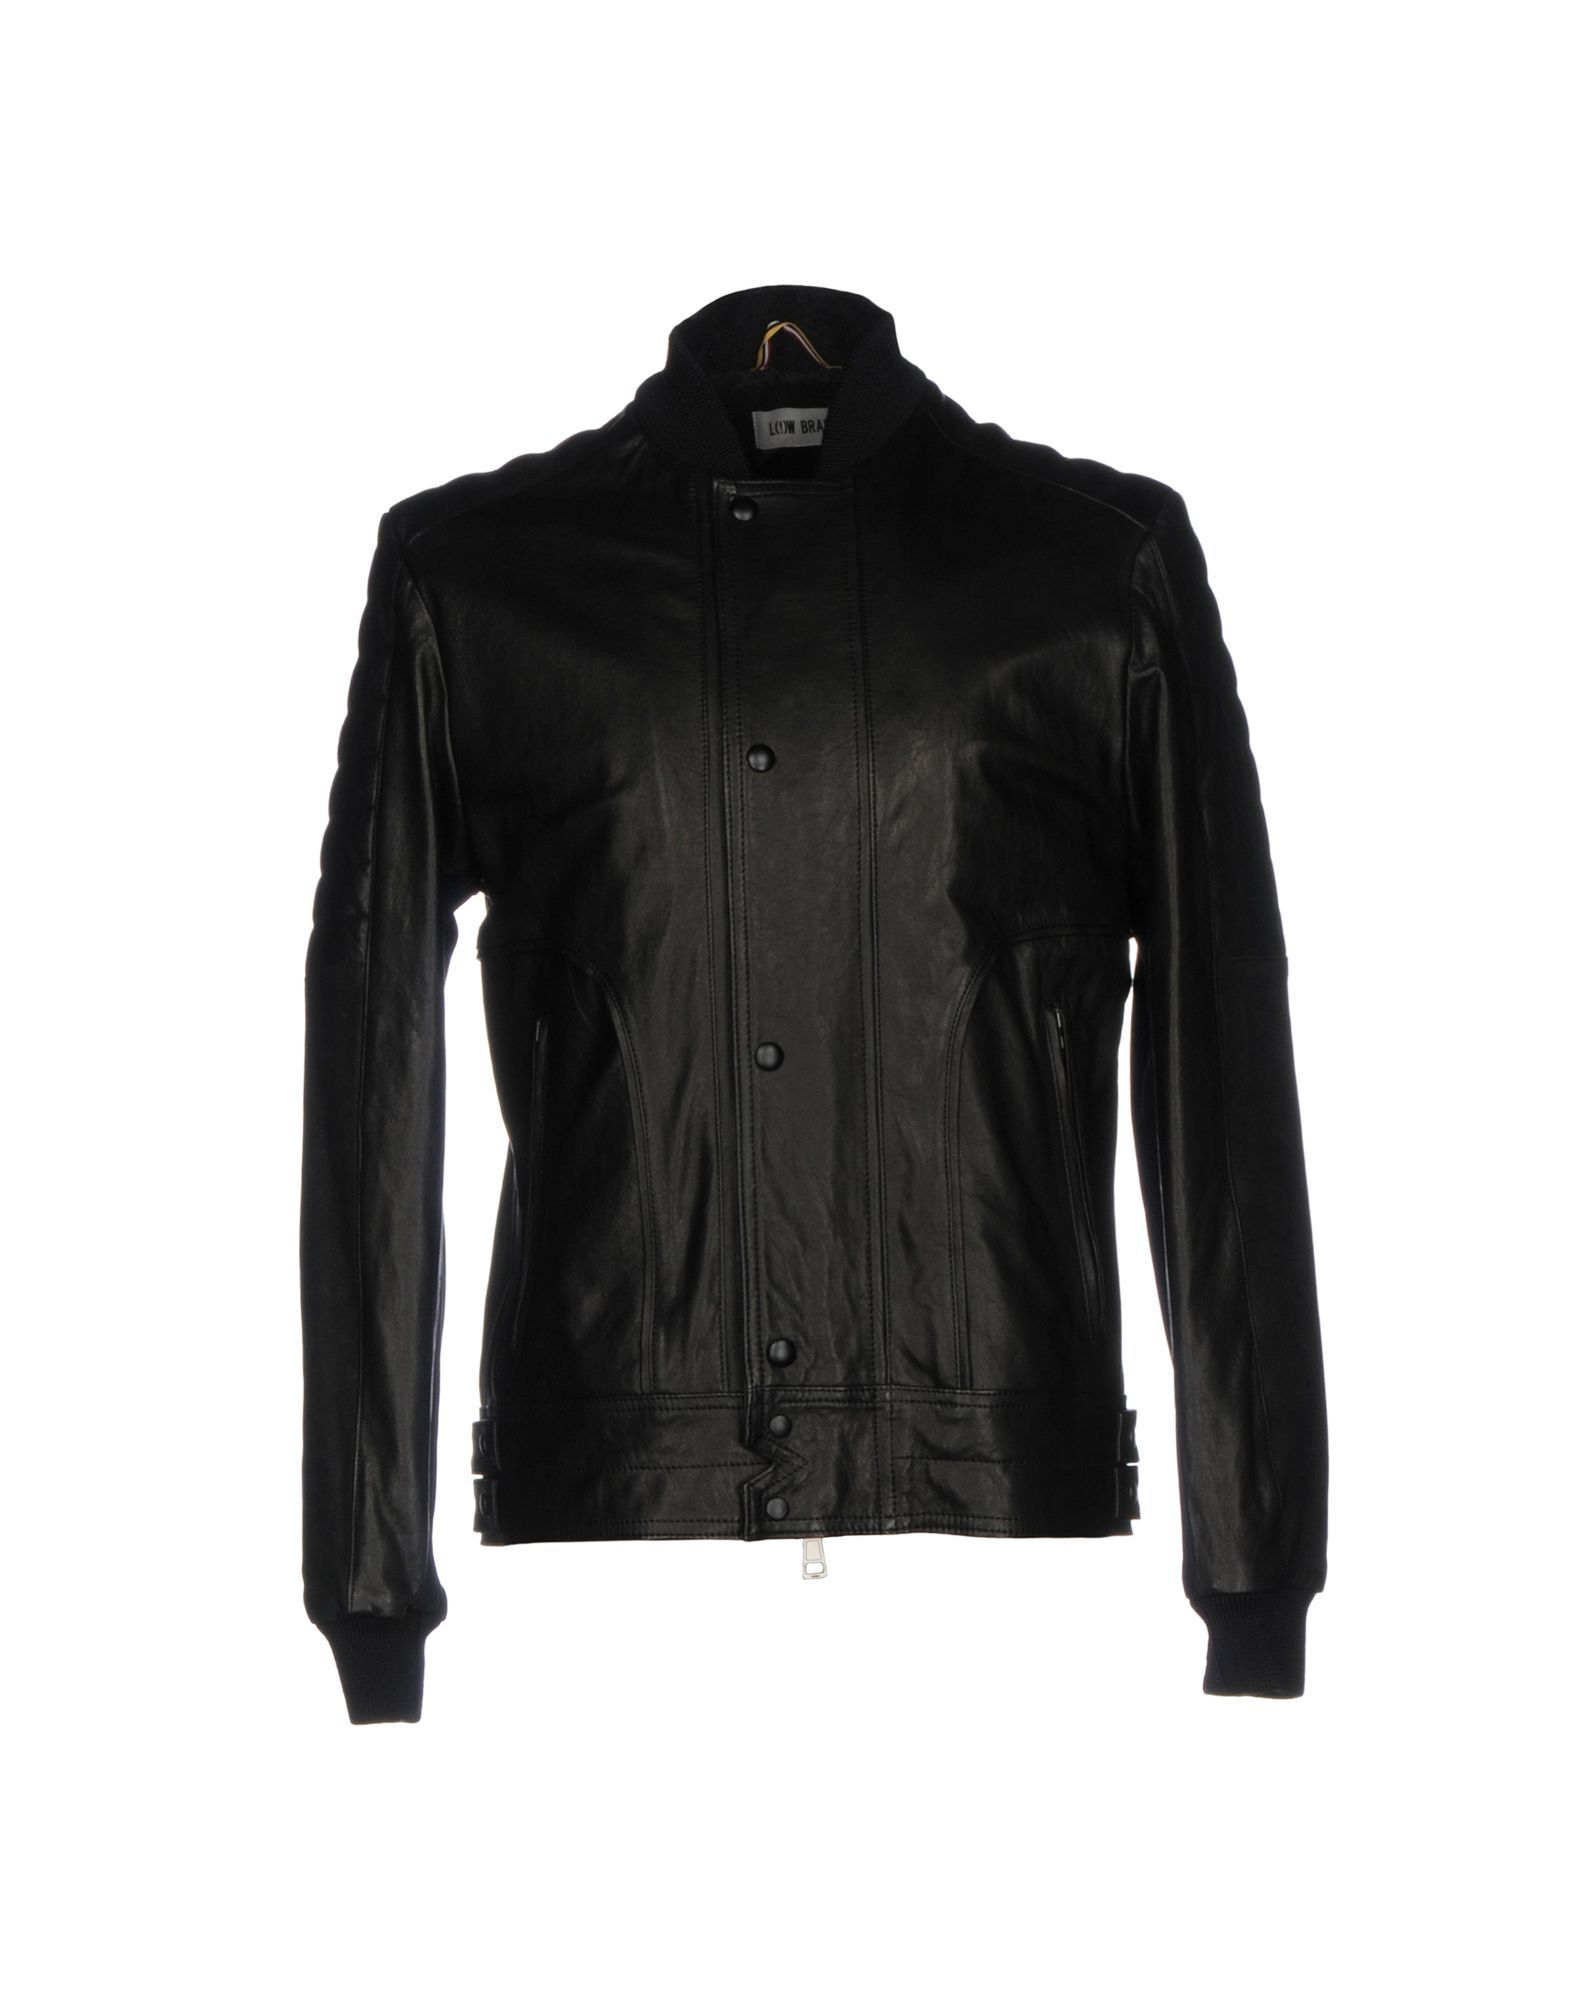 L(!)W BRAND Куртка (With images) Mens jacket black